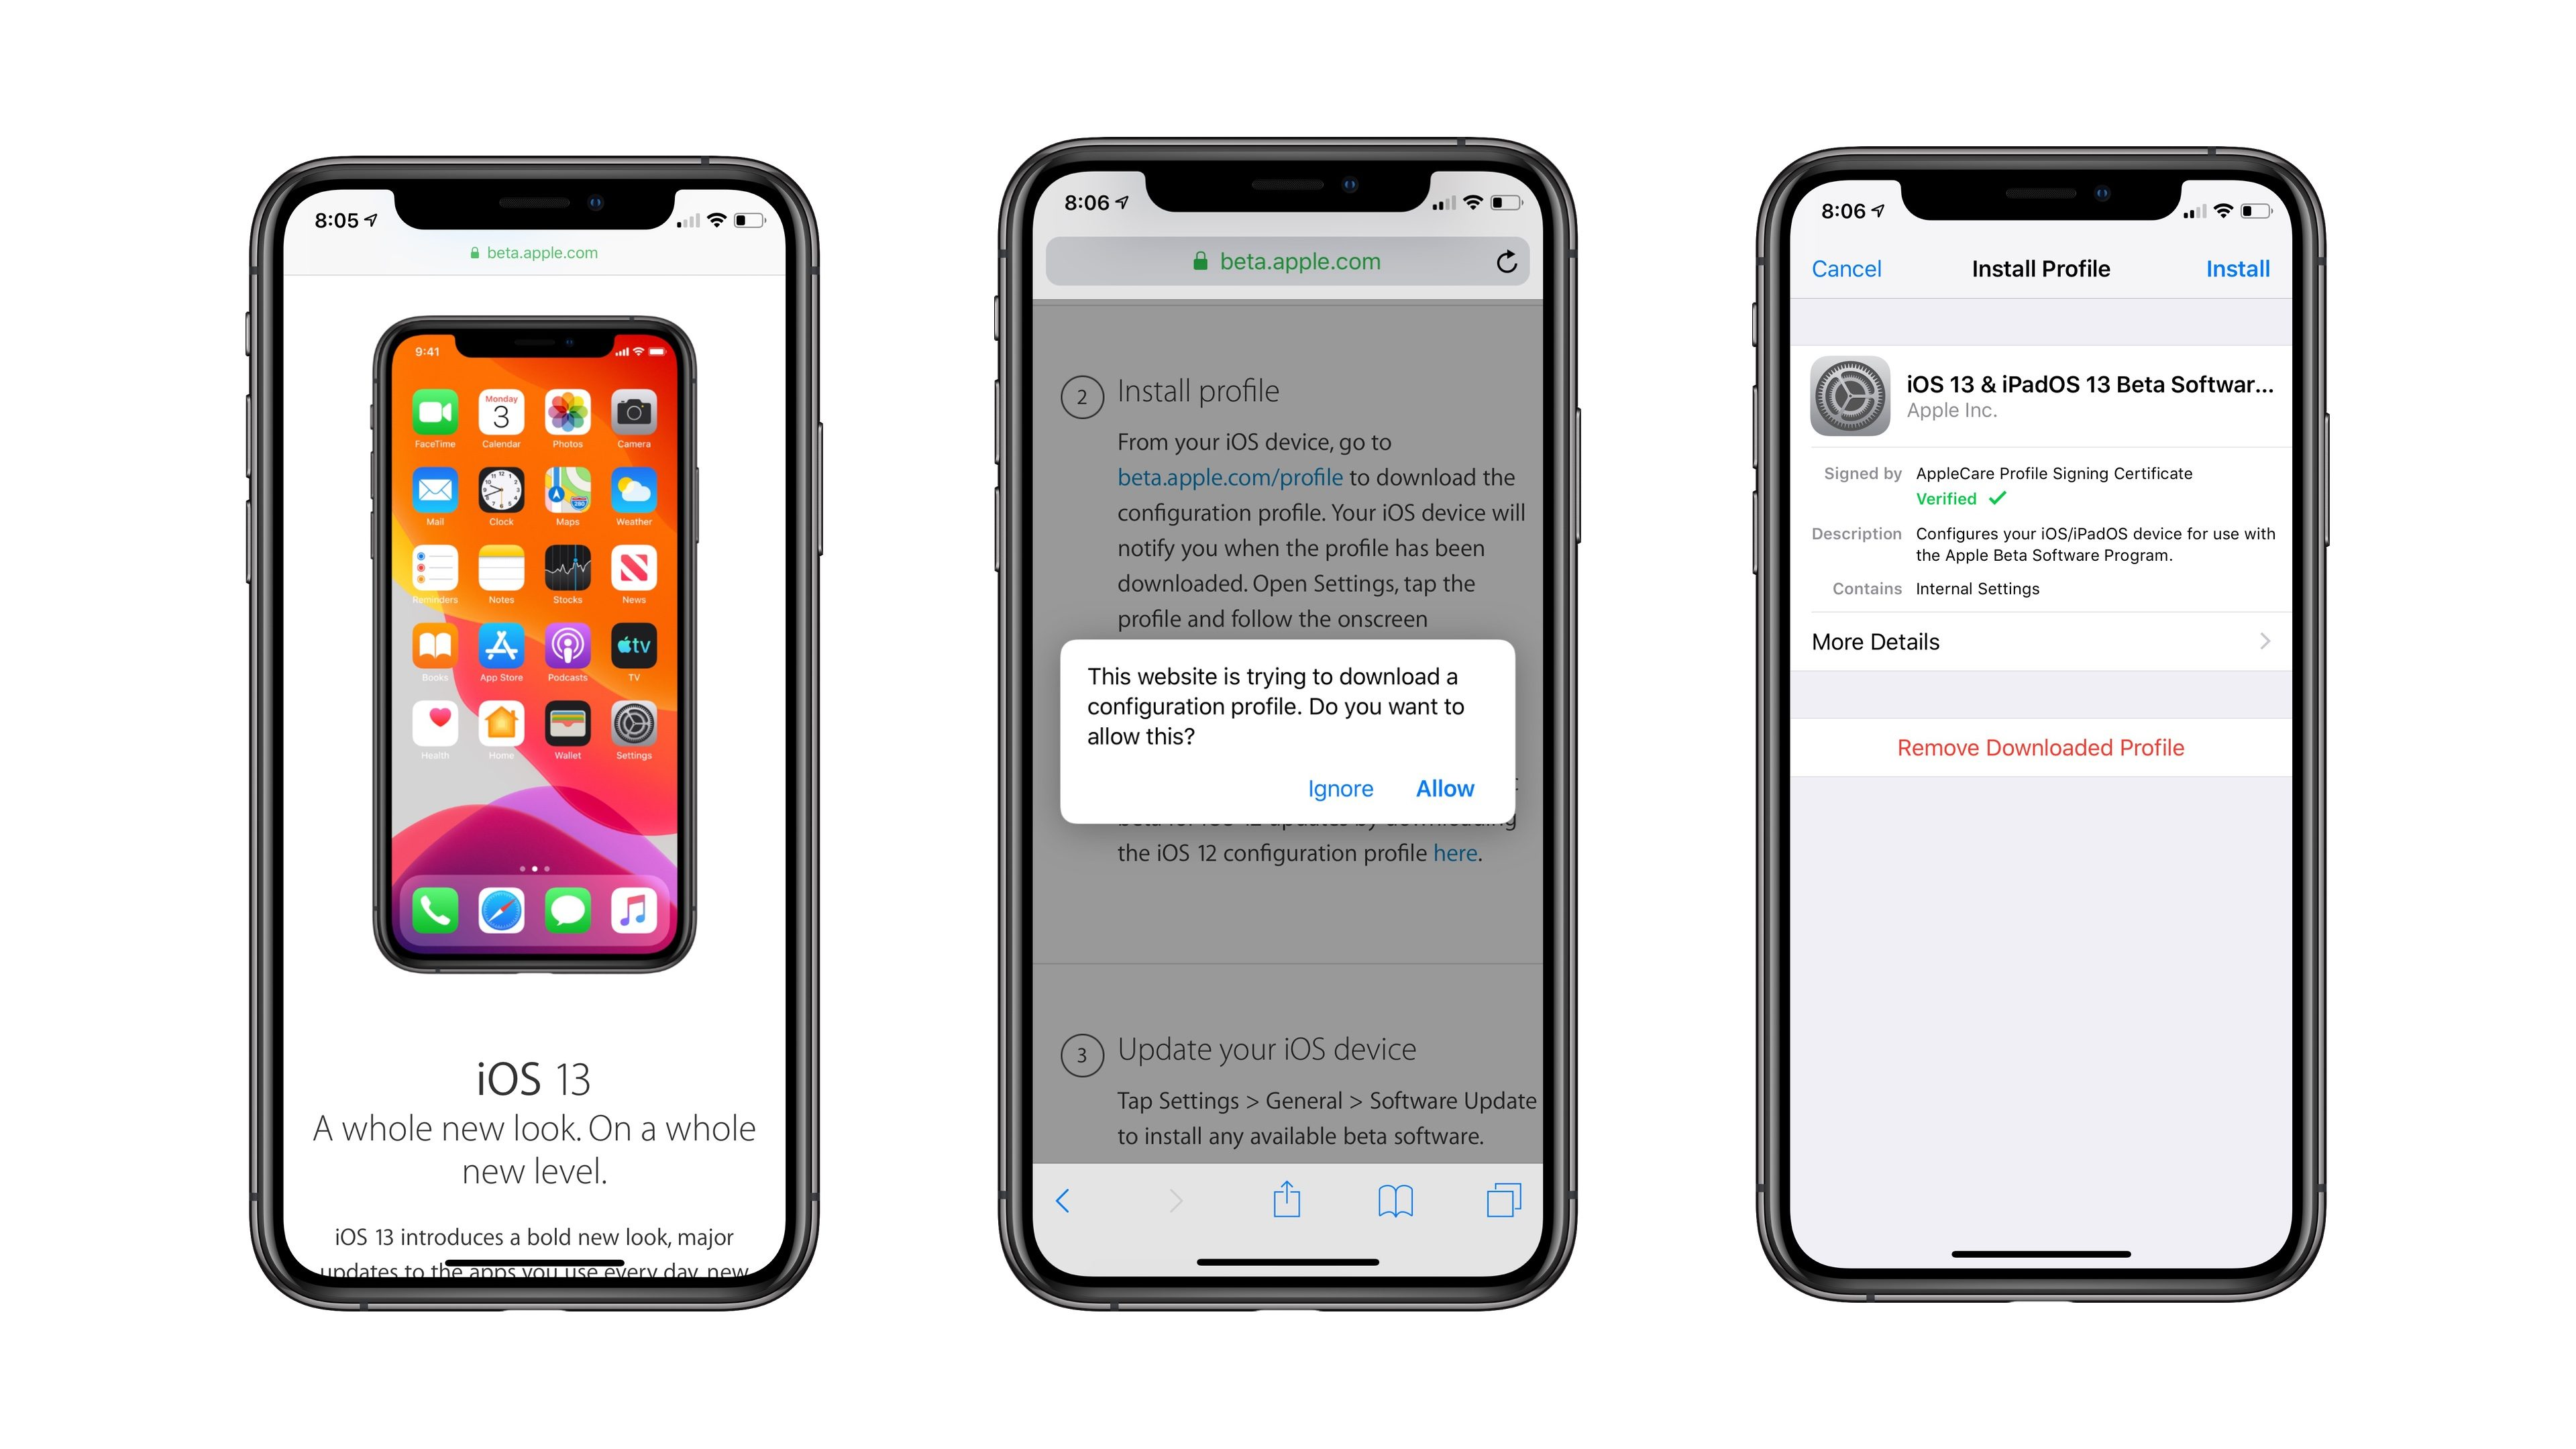 "<span href=""https://9to5mac.com/2019/06/24/how-to-install-the-ios-13-public-beta/"">como instalar el iOS 13 public beta en tu iPhone</a>"